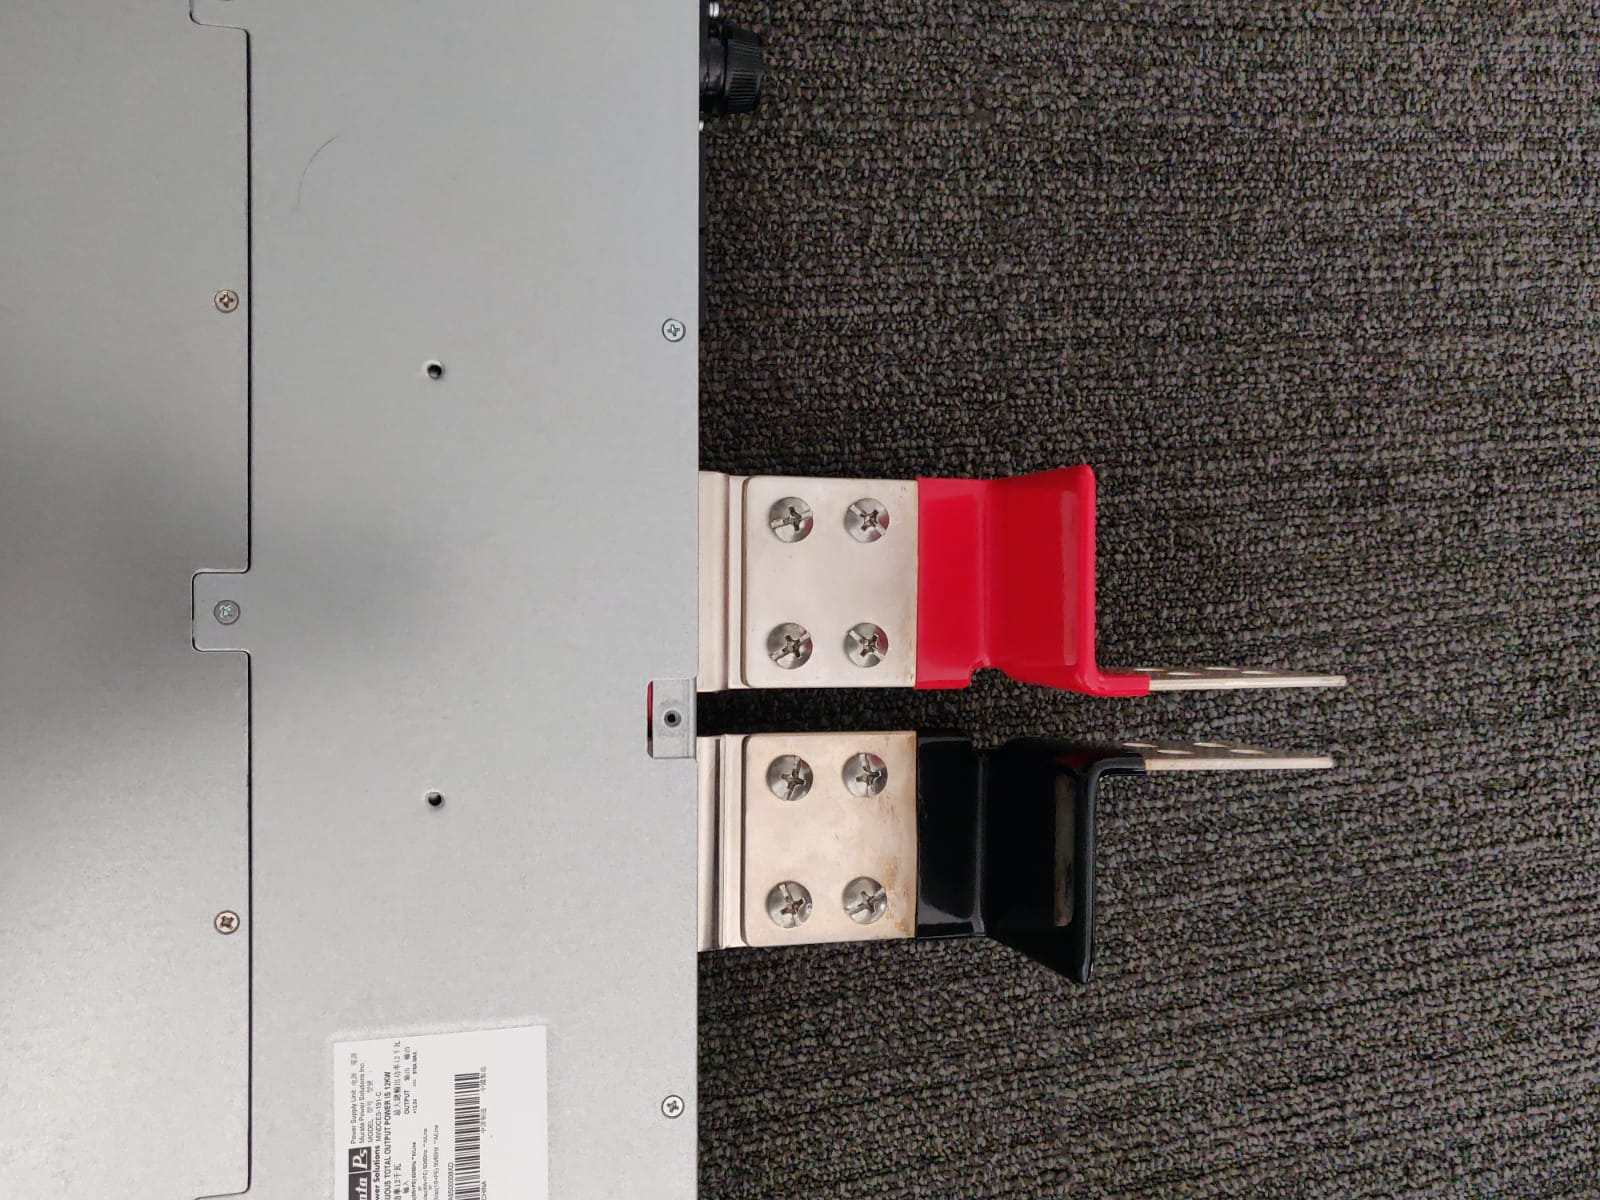 ESA kit power supply junctions (black and red)